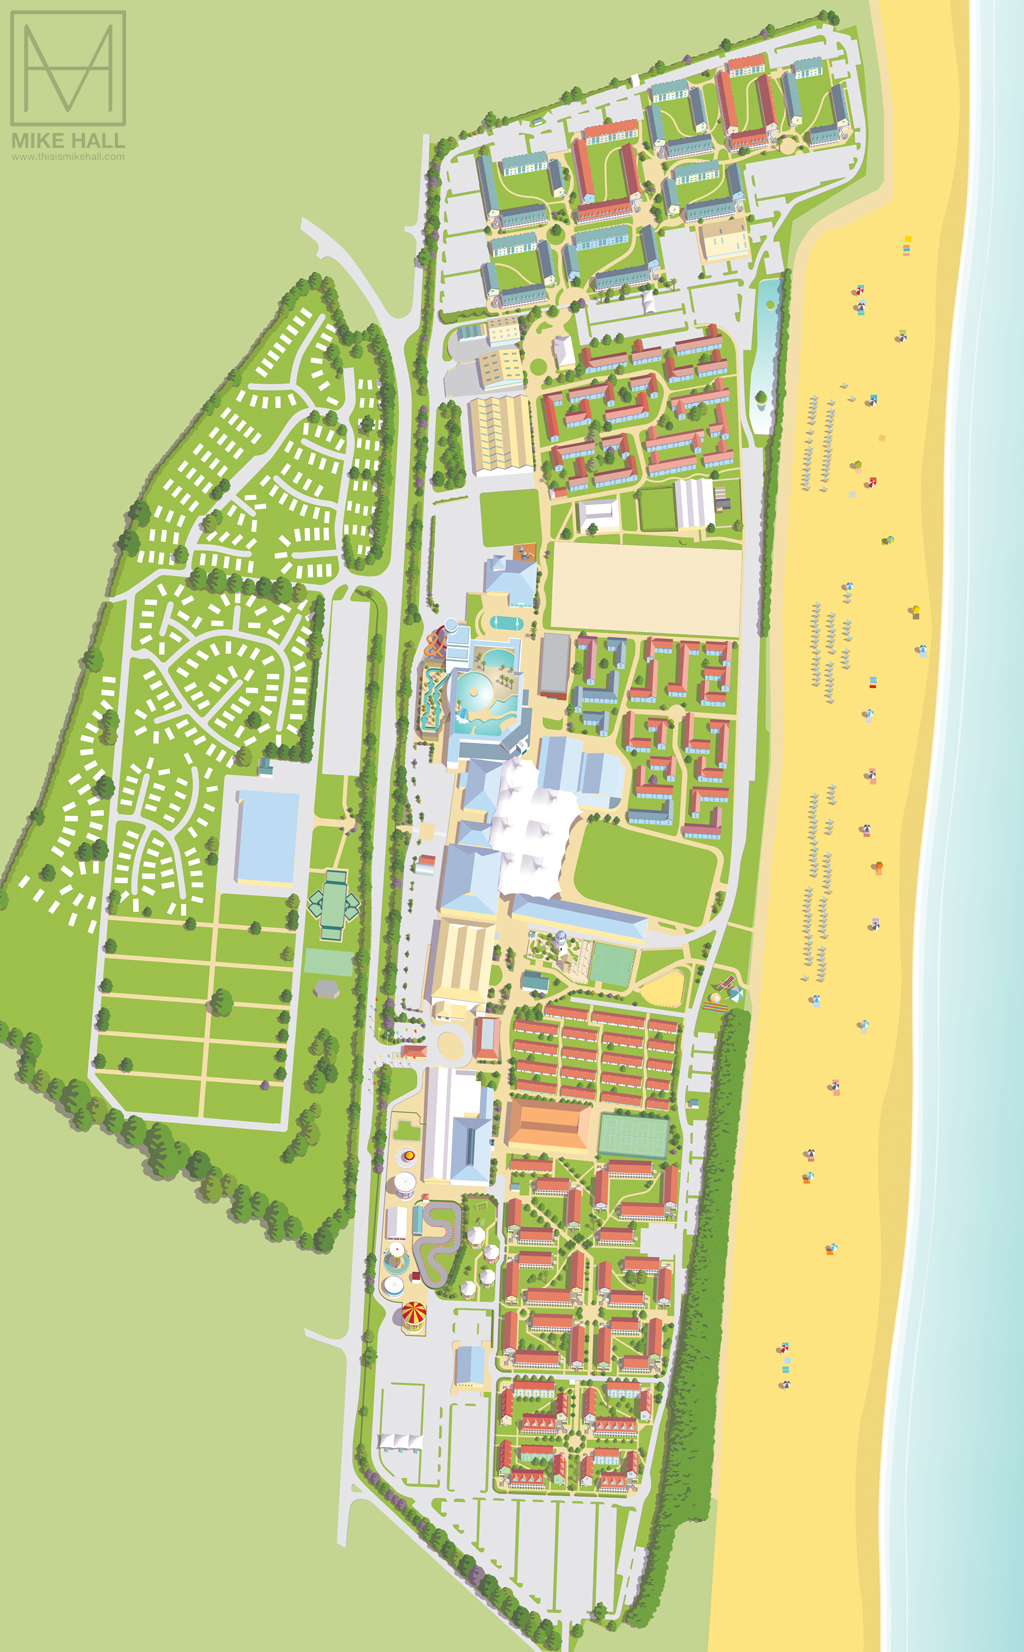 Butlins Skegness Map Resort maps for Butlins on Behance